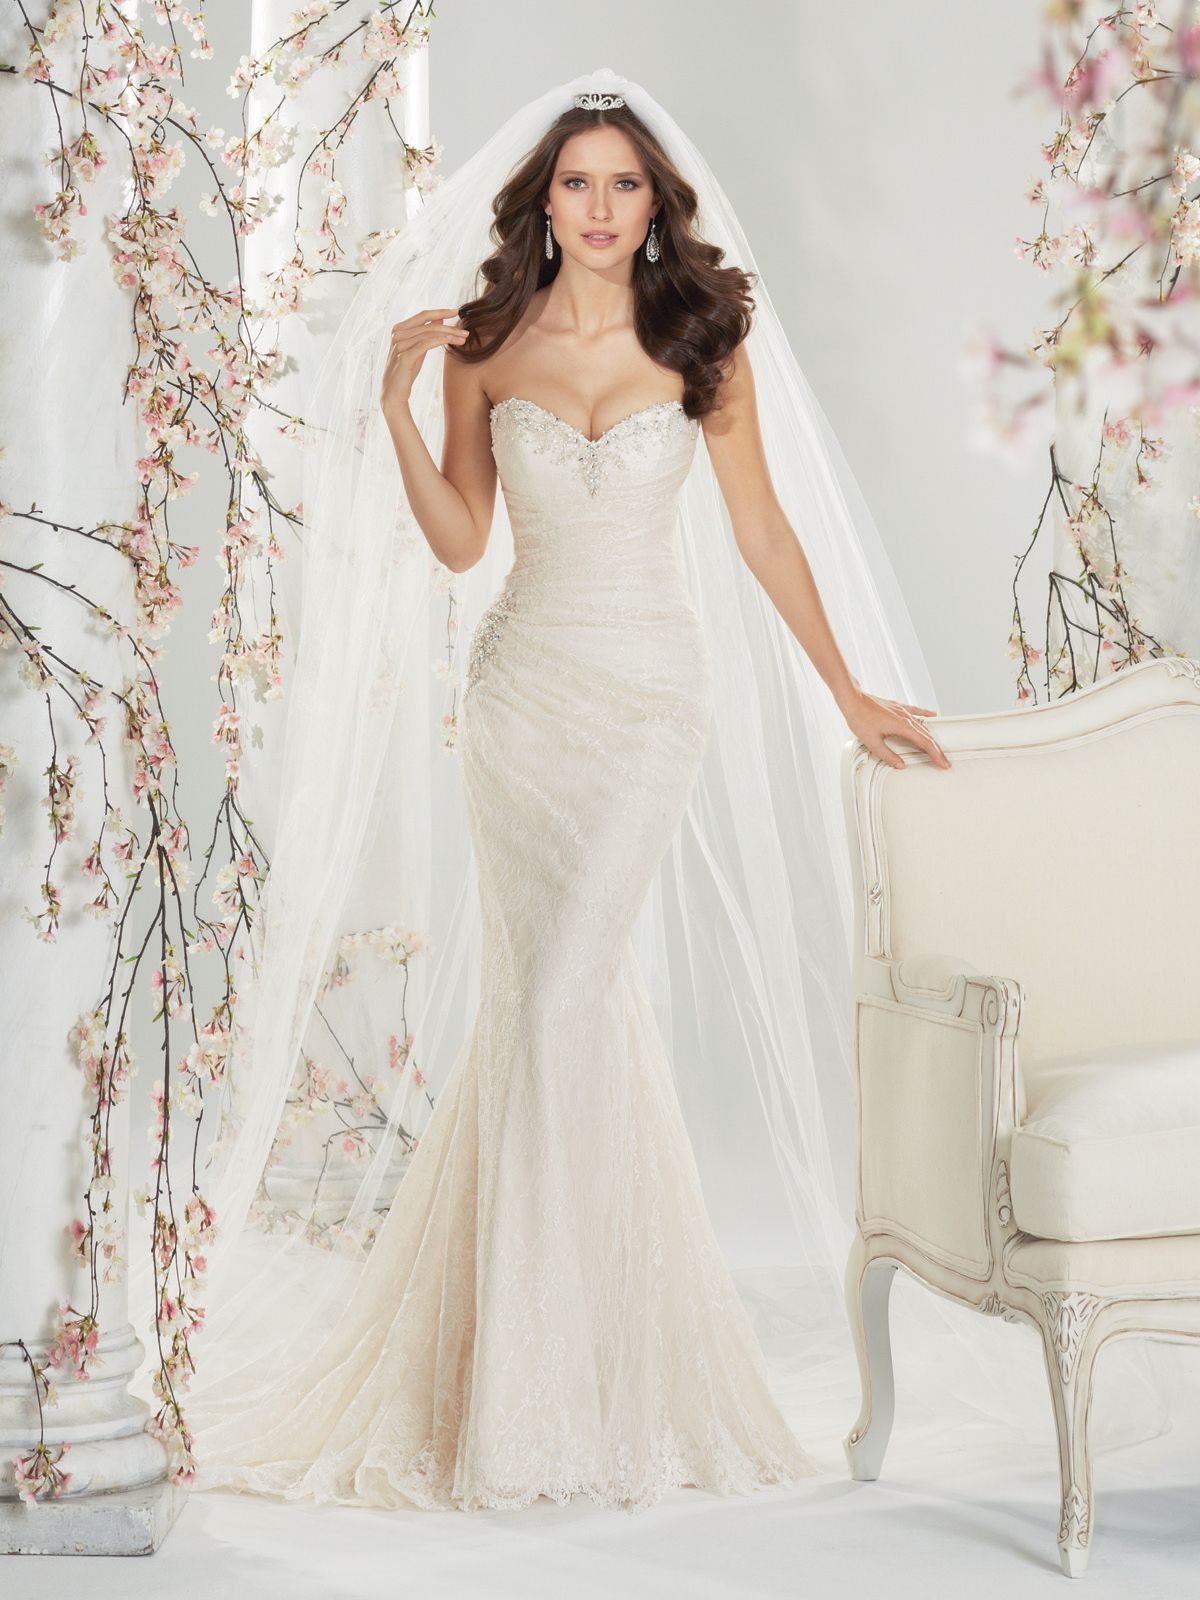 17 Best images about sophia tolli on Pinterest | Tulle wedding ...